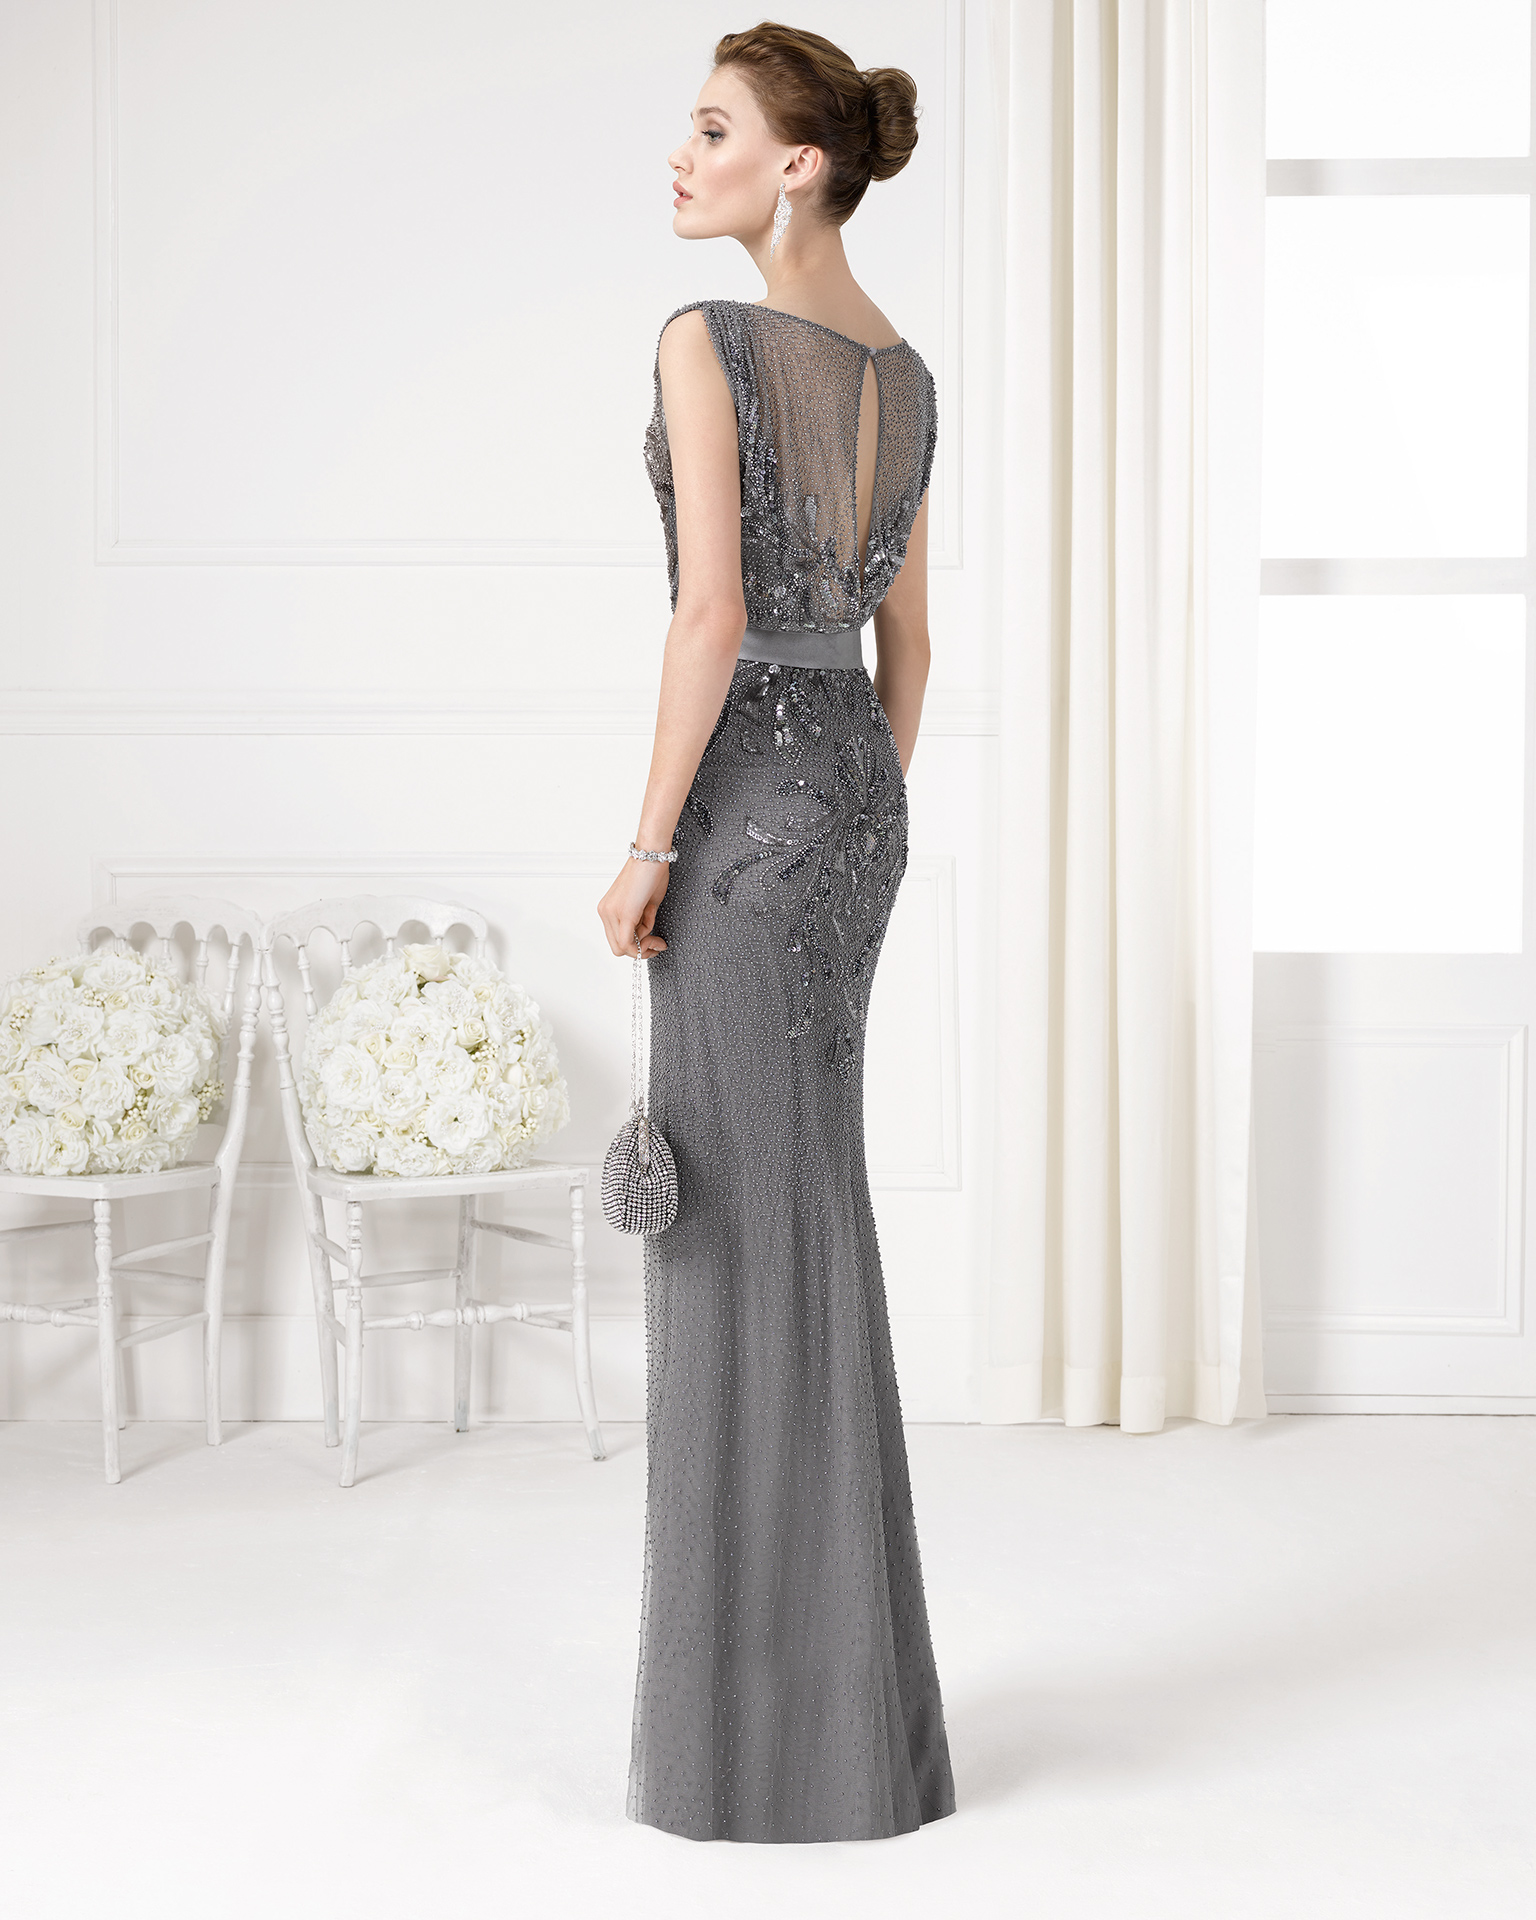 9U2E2 - Beaded cocktail gown.